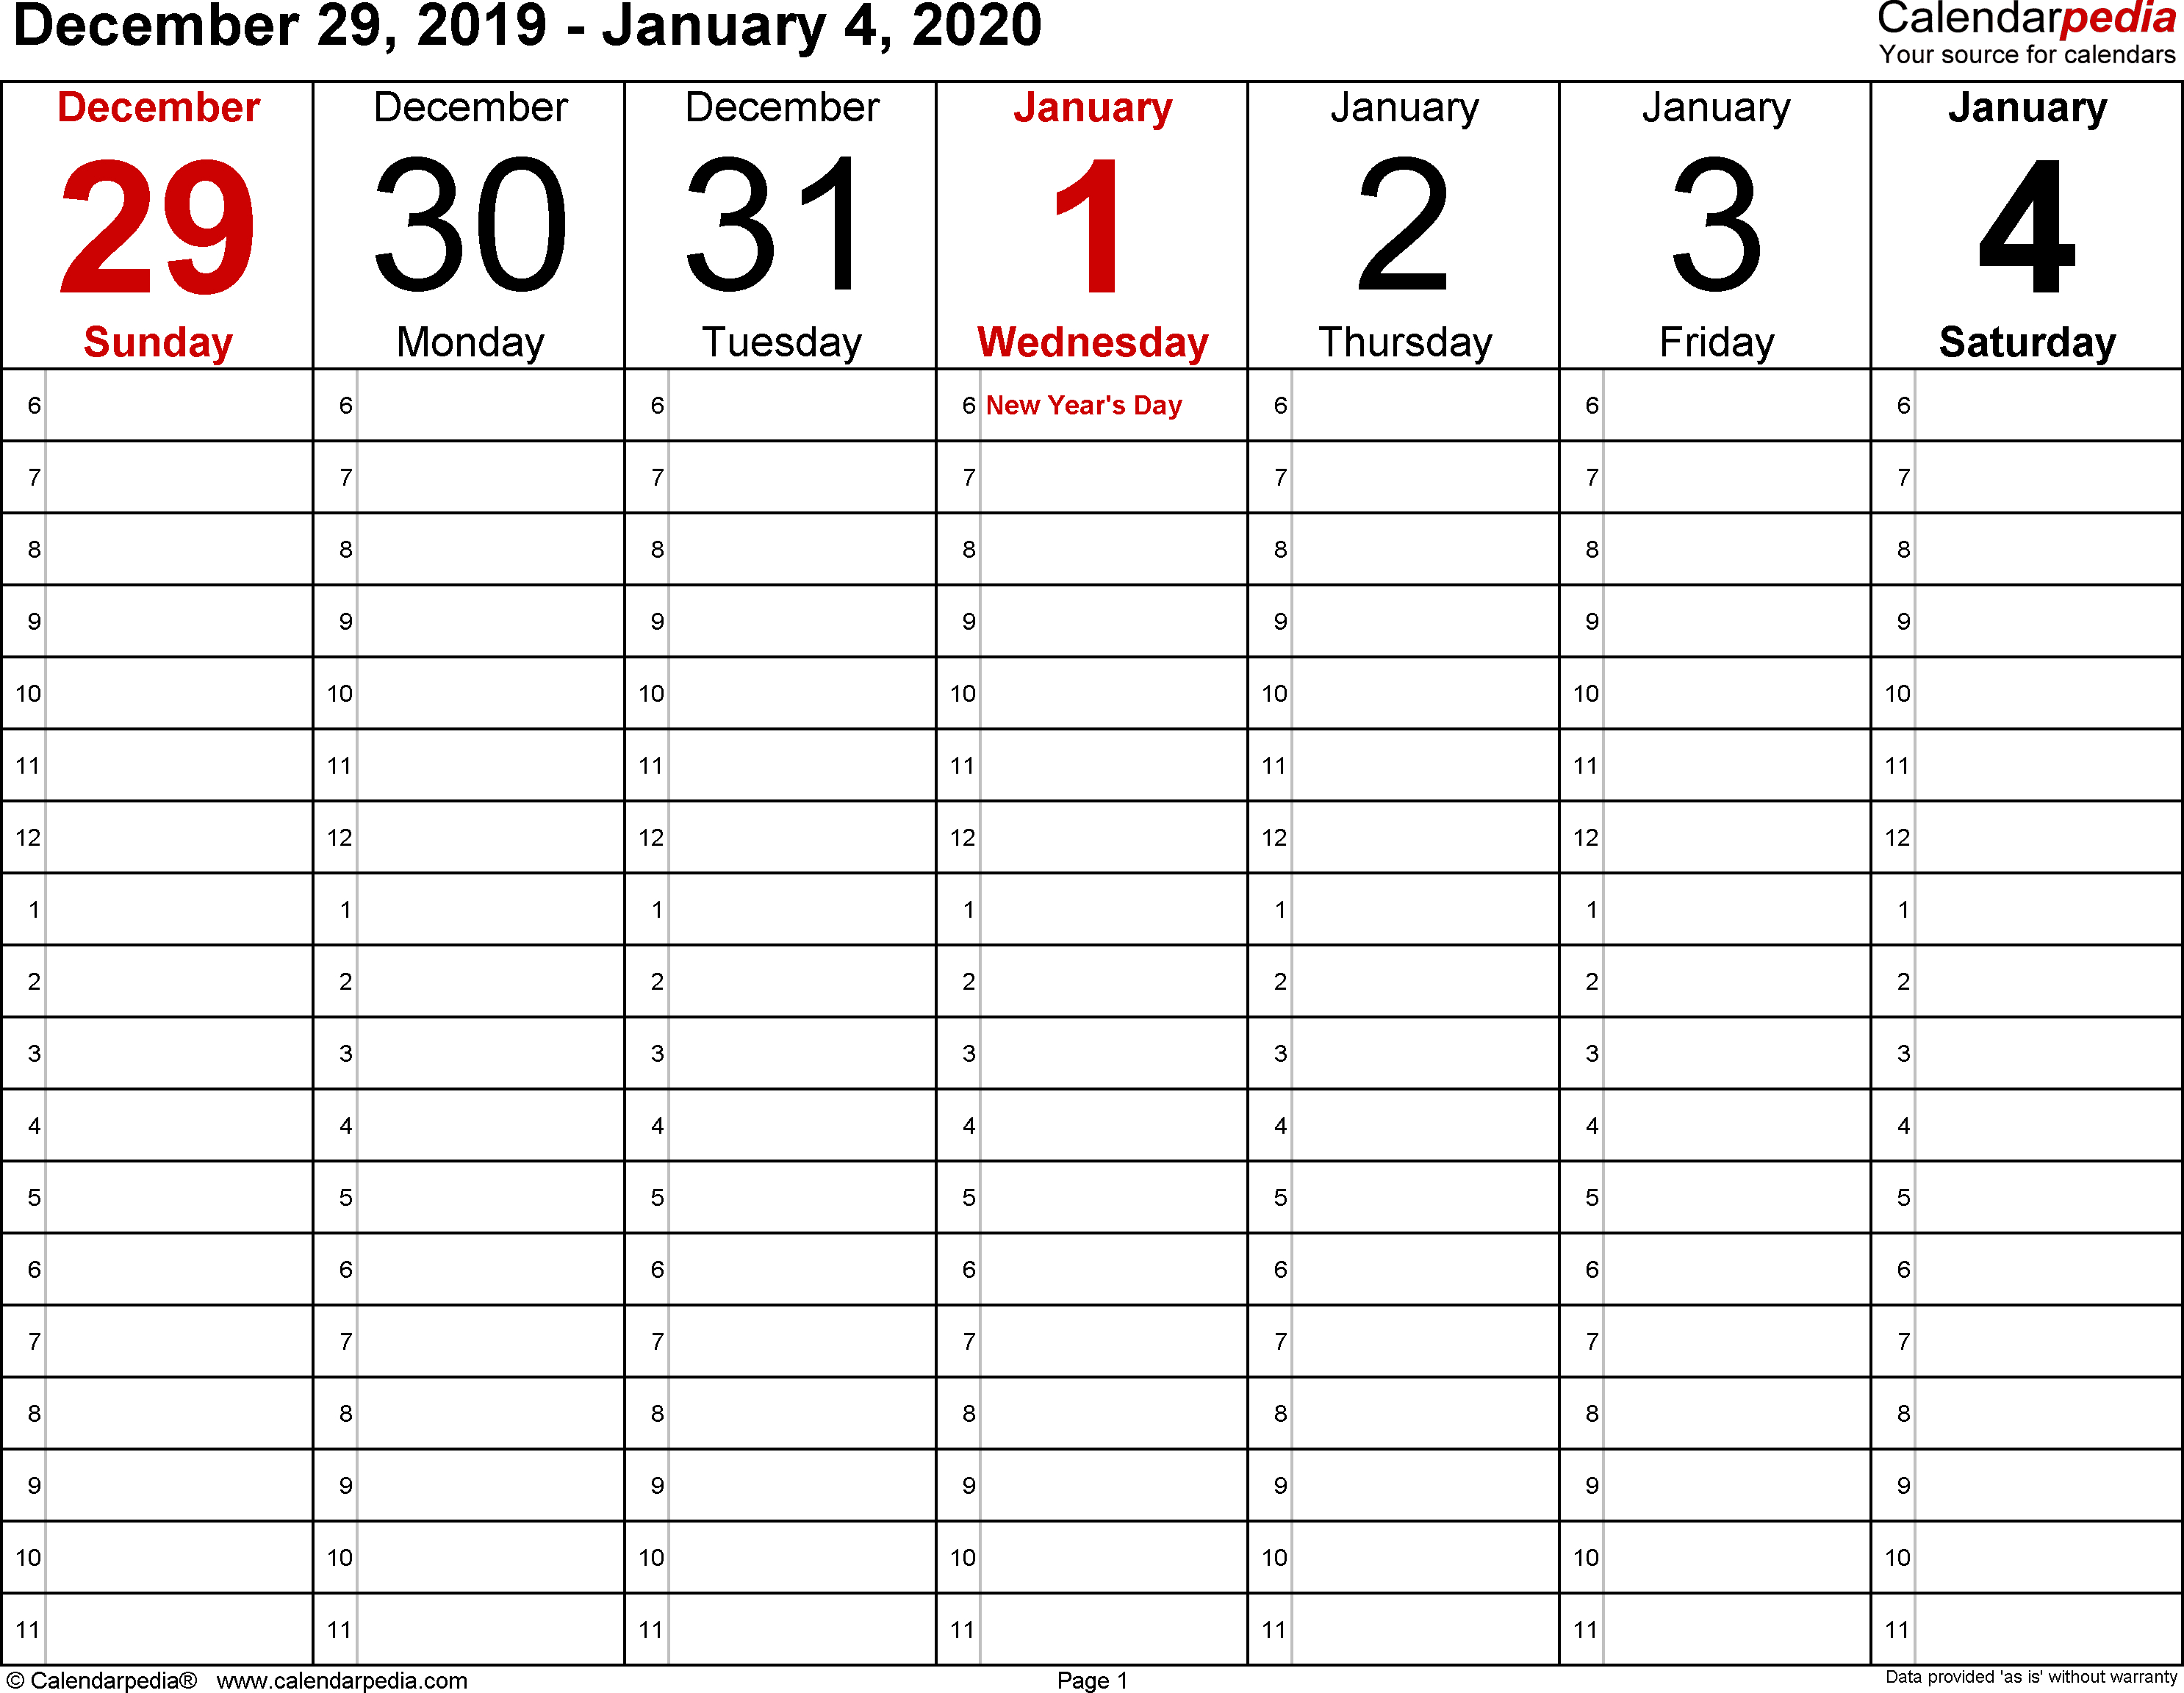 Weekly Calendar 2020 - Wpa.wpart.co with regard to 2020 December Calendar 8 X11 Printable